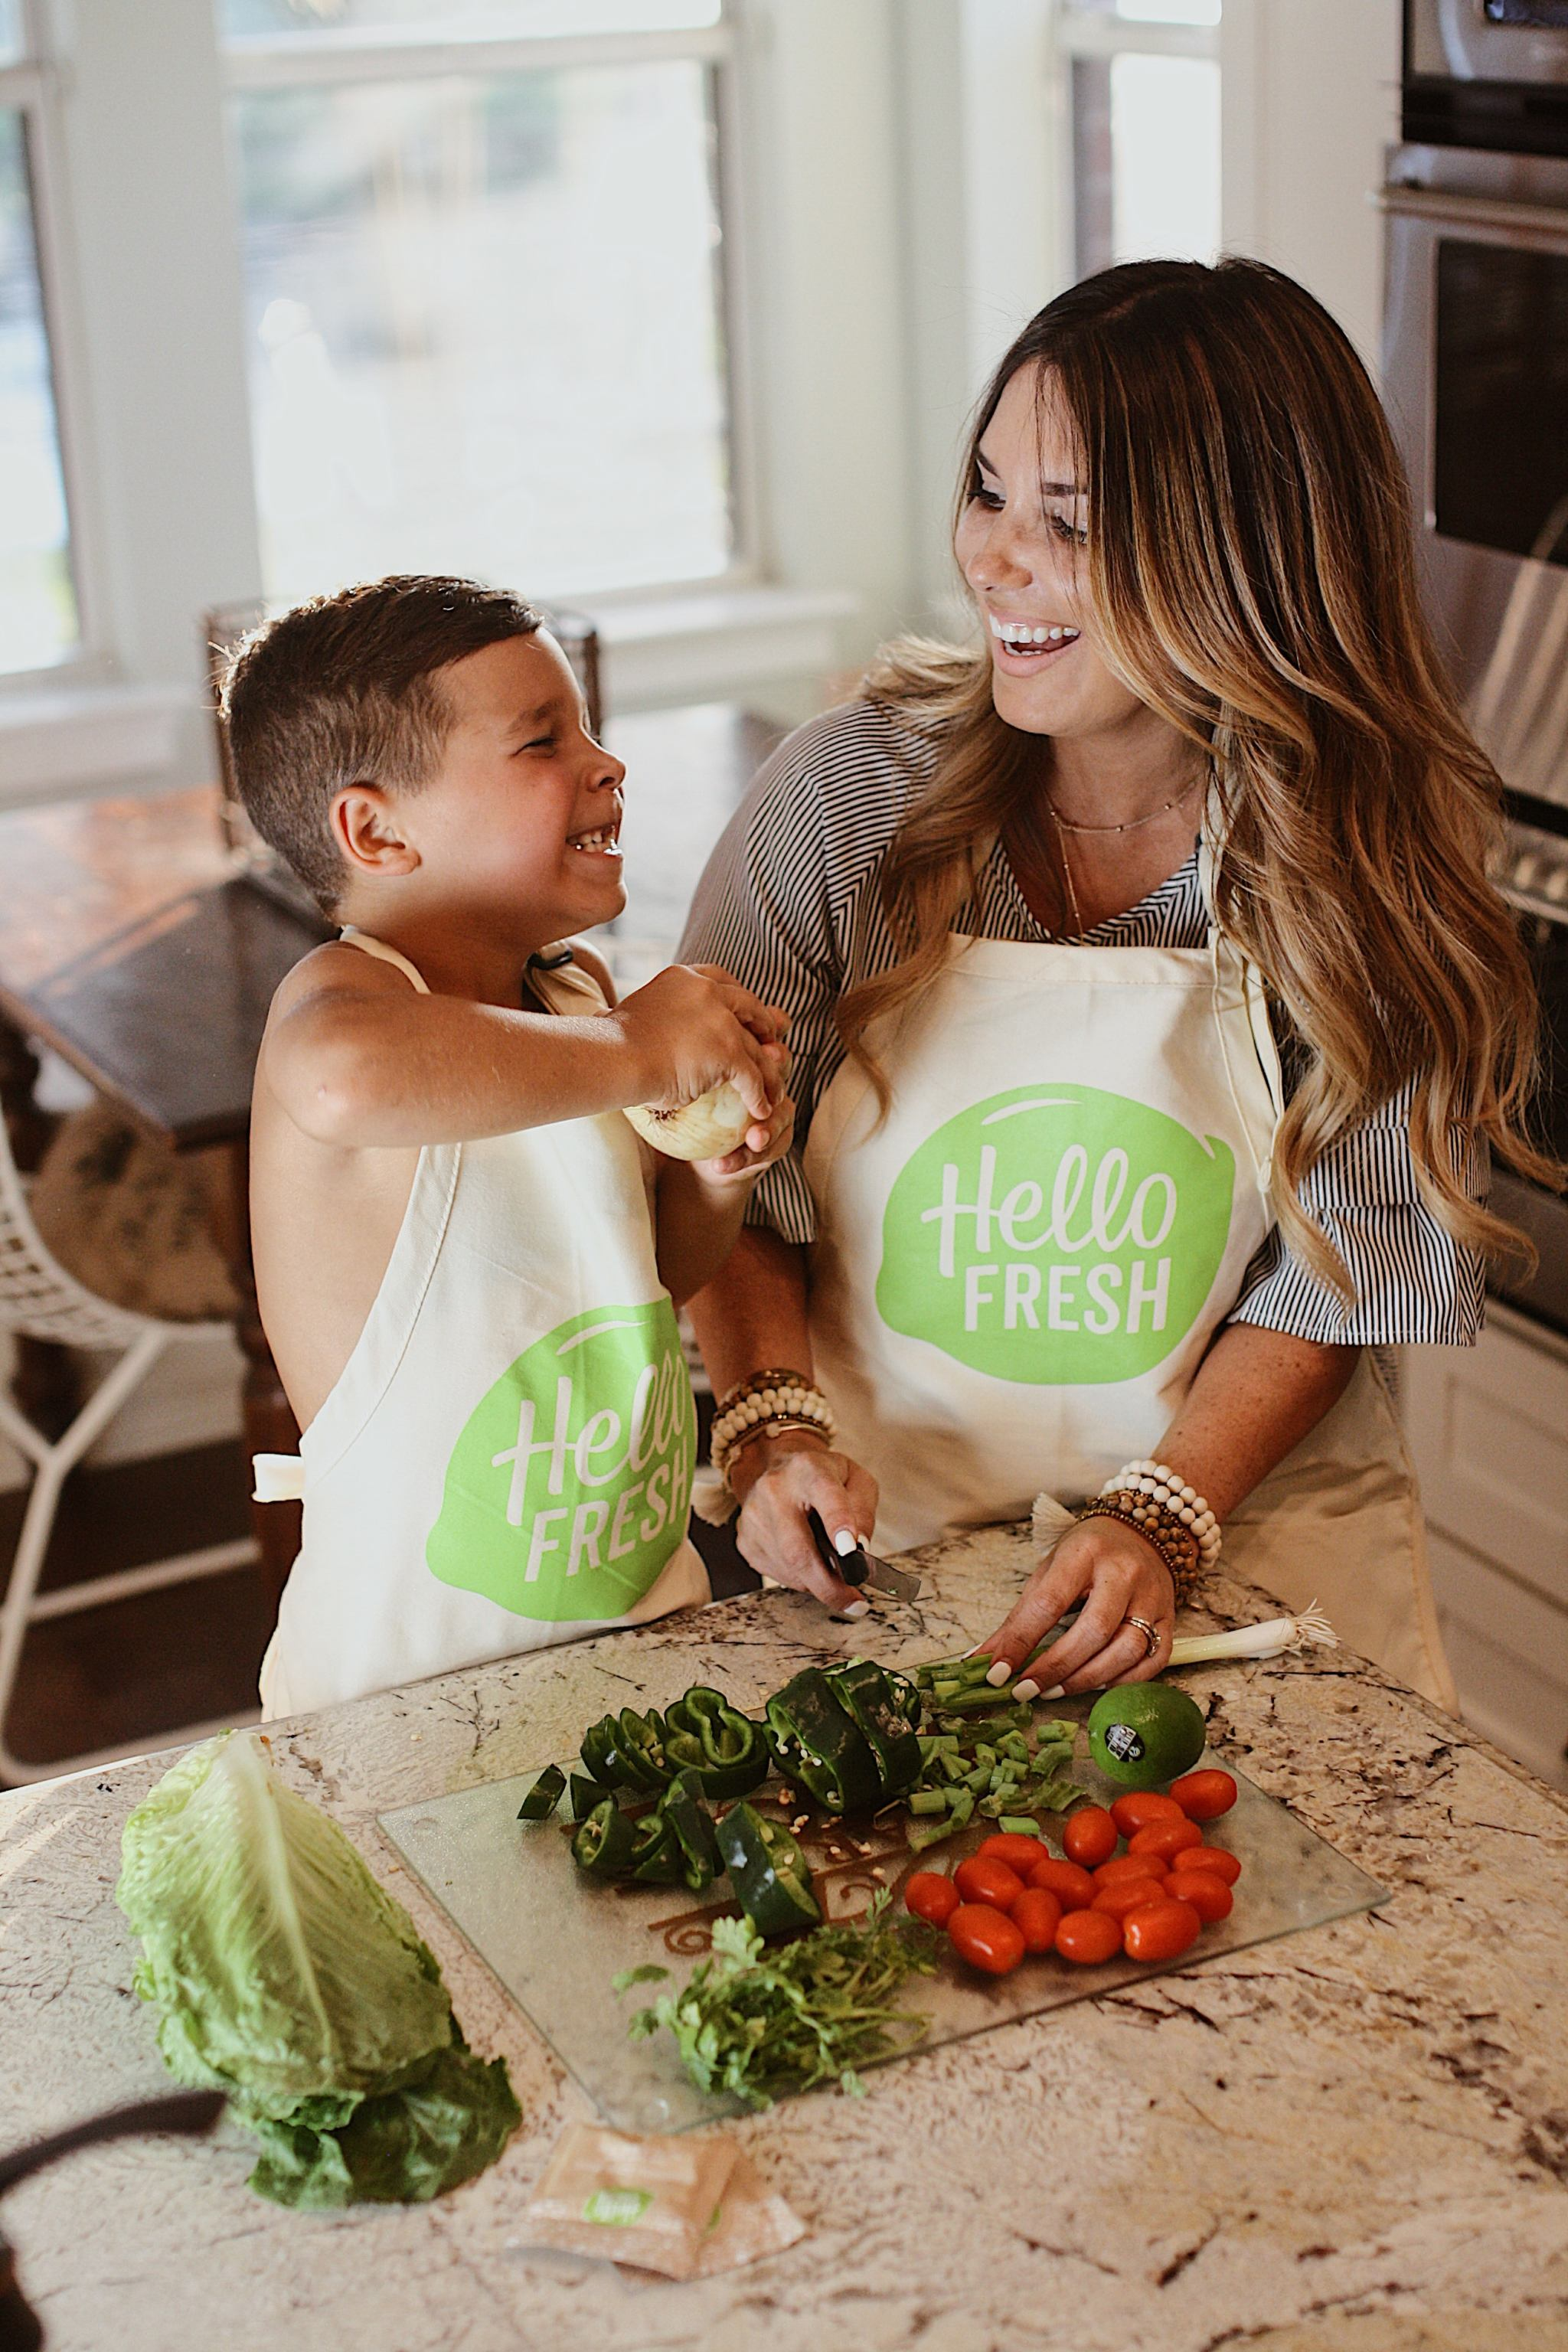 Cooking for the family can be difficult. Hello Fresh makes it so easy for busy moms. Read more to find out how our family loves Hello Fresh.